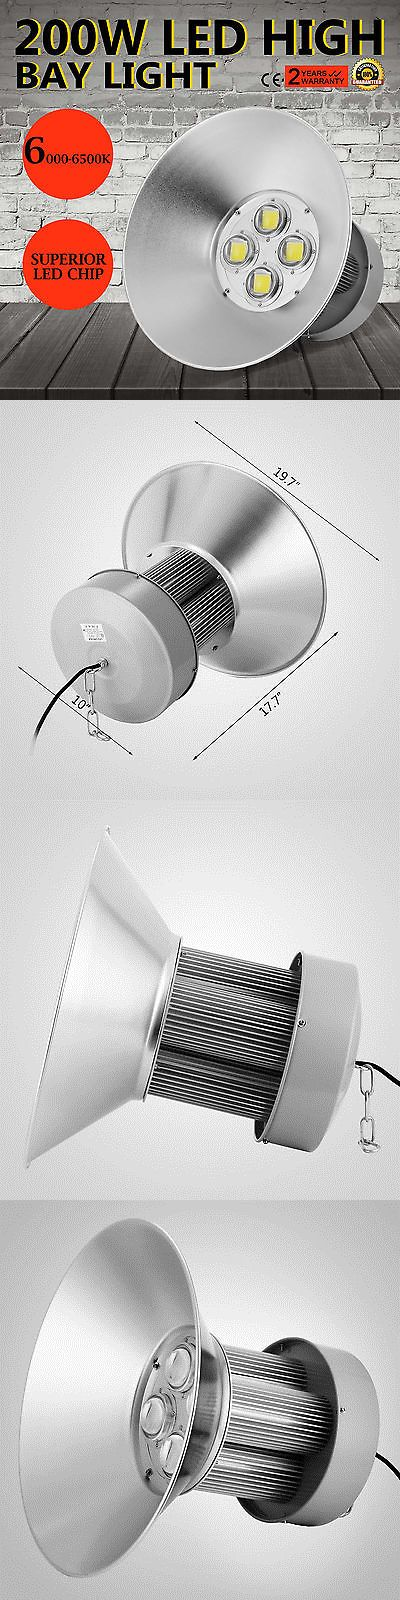 materials: 200W Watt Led High Bay Light Bright White Lamp Lighting Fixture Factory Industry -> BUY IT NOW ONLY: $93.78 on eBay!